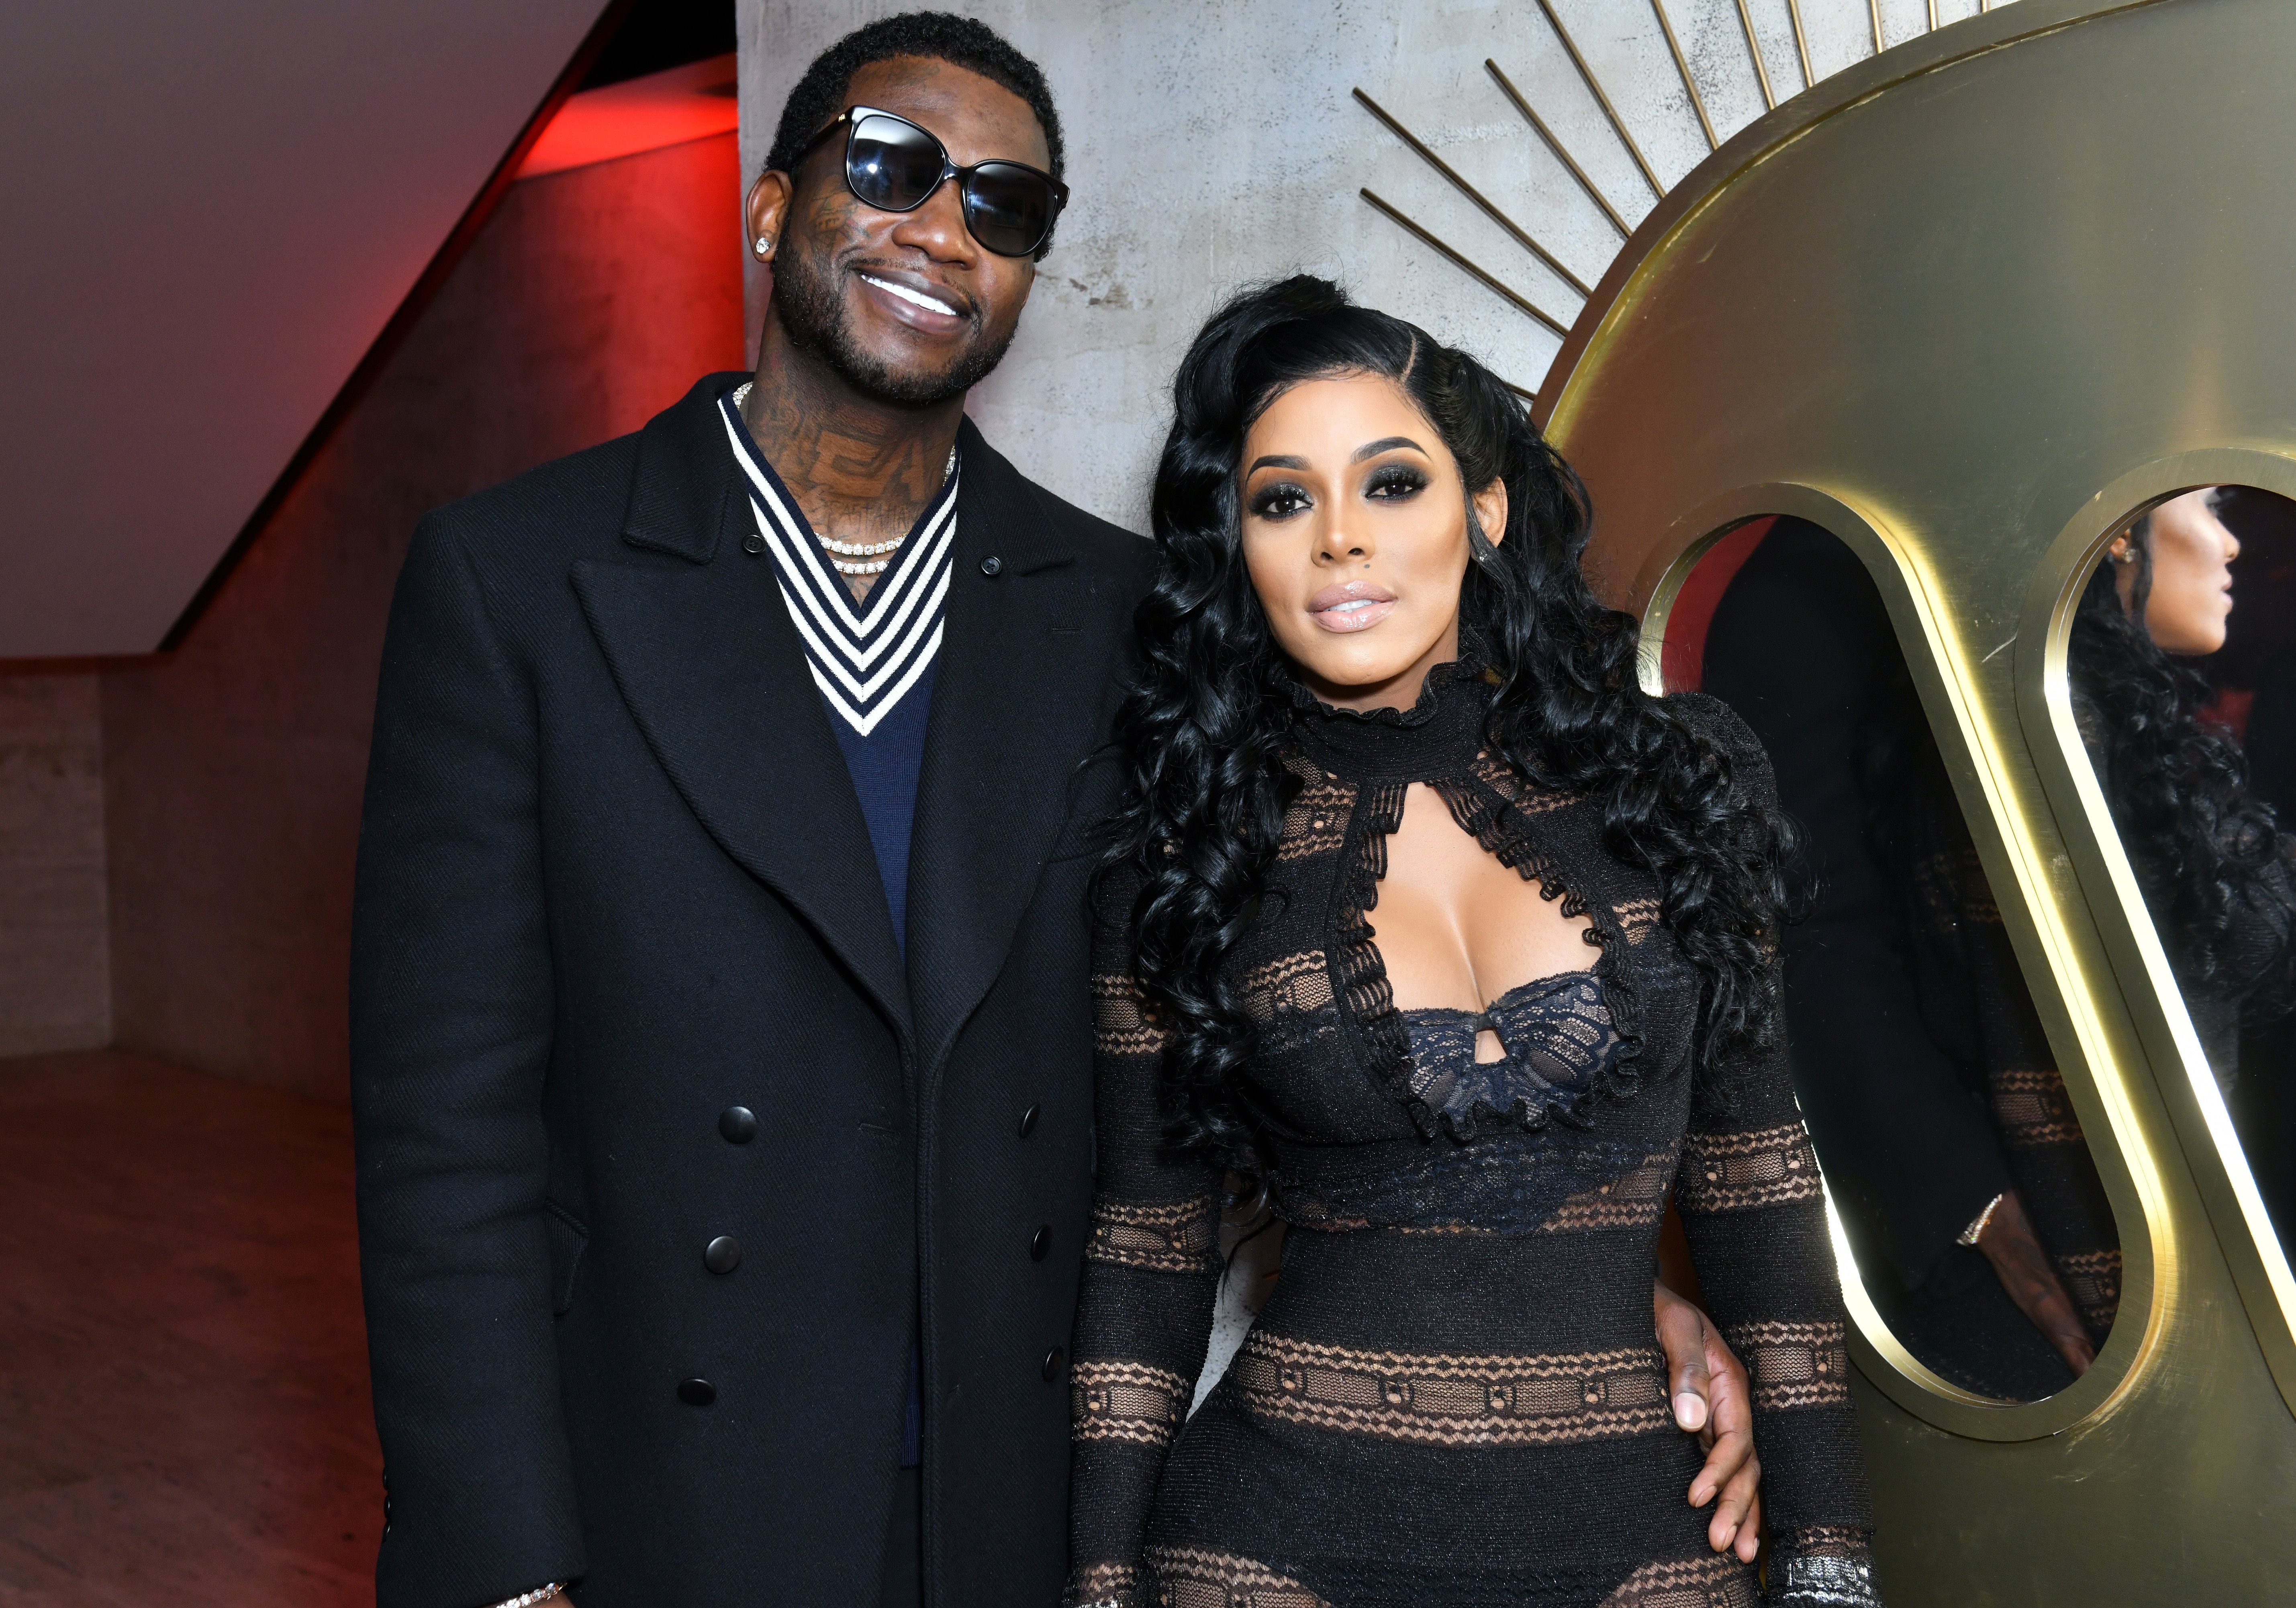 Gucci Mane and Keyshia Ka'oir at the Warner Music Group Pre-Grammy Party in January 25, 2018 in New York City. | Source: Getty Images